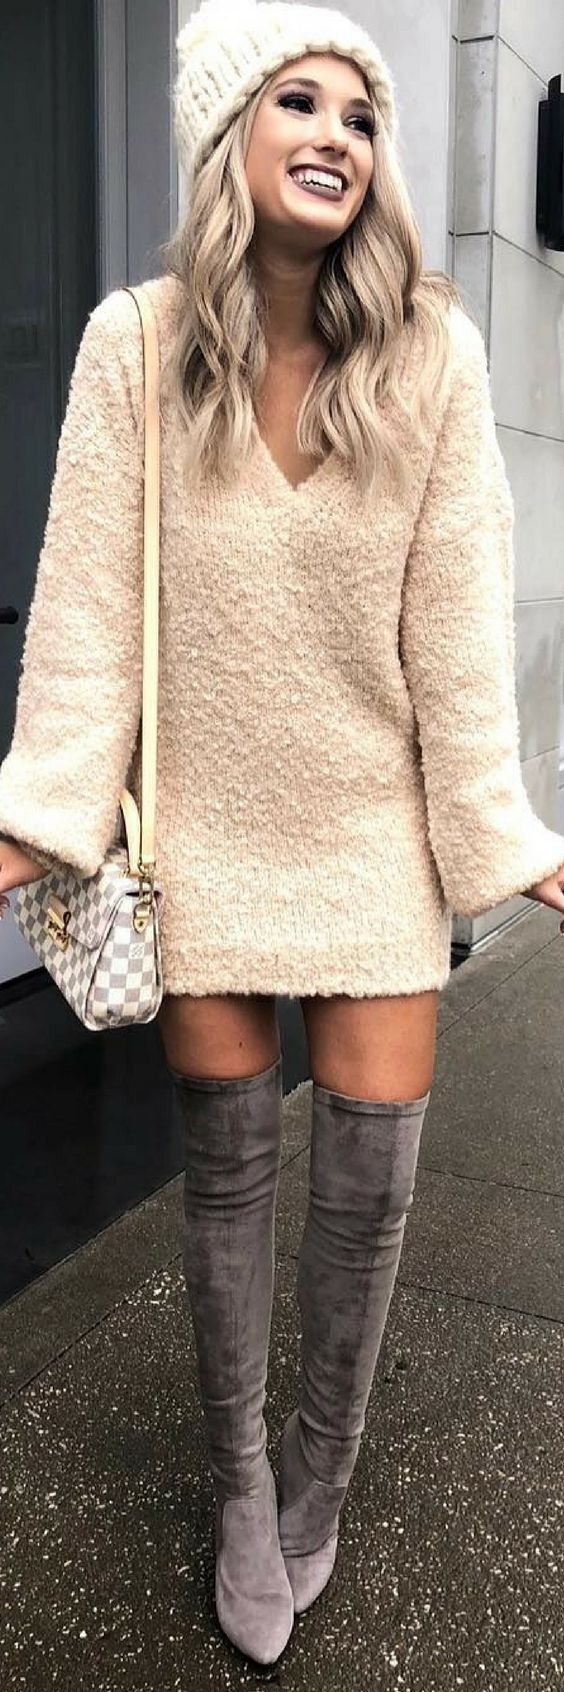 Stylish Over Knee Boots Fashion Ideas 2018 31